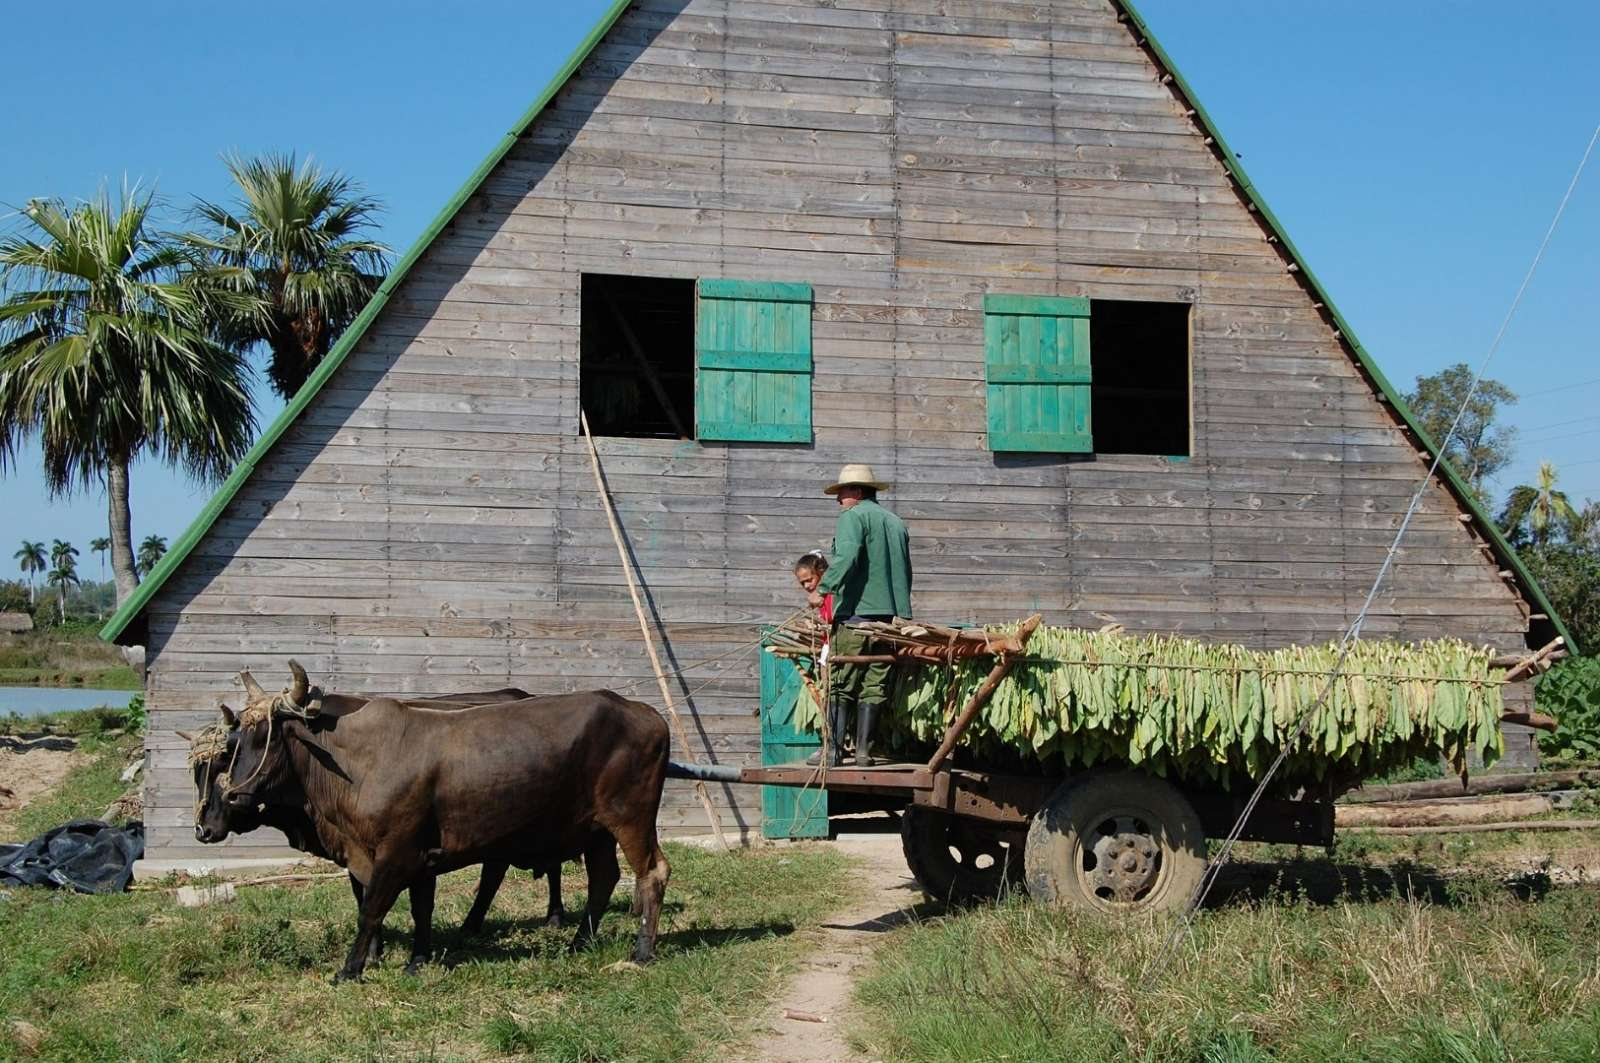 Traditional Vinales tobacco barn and transport